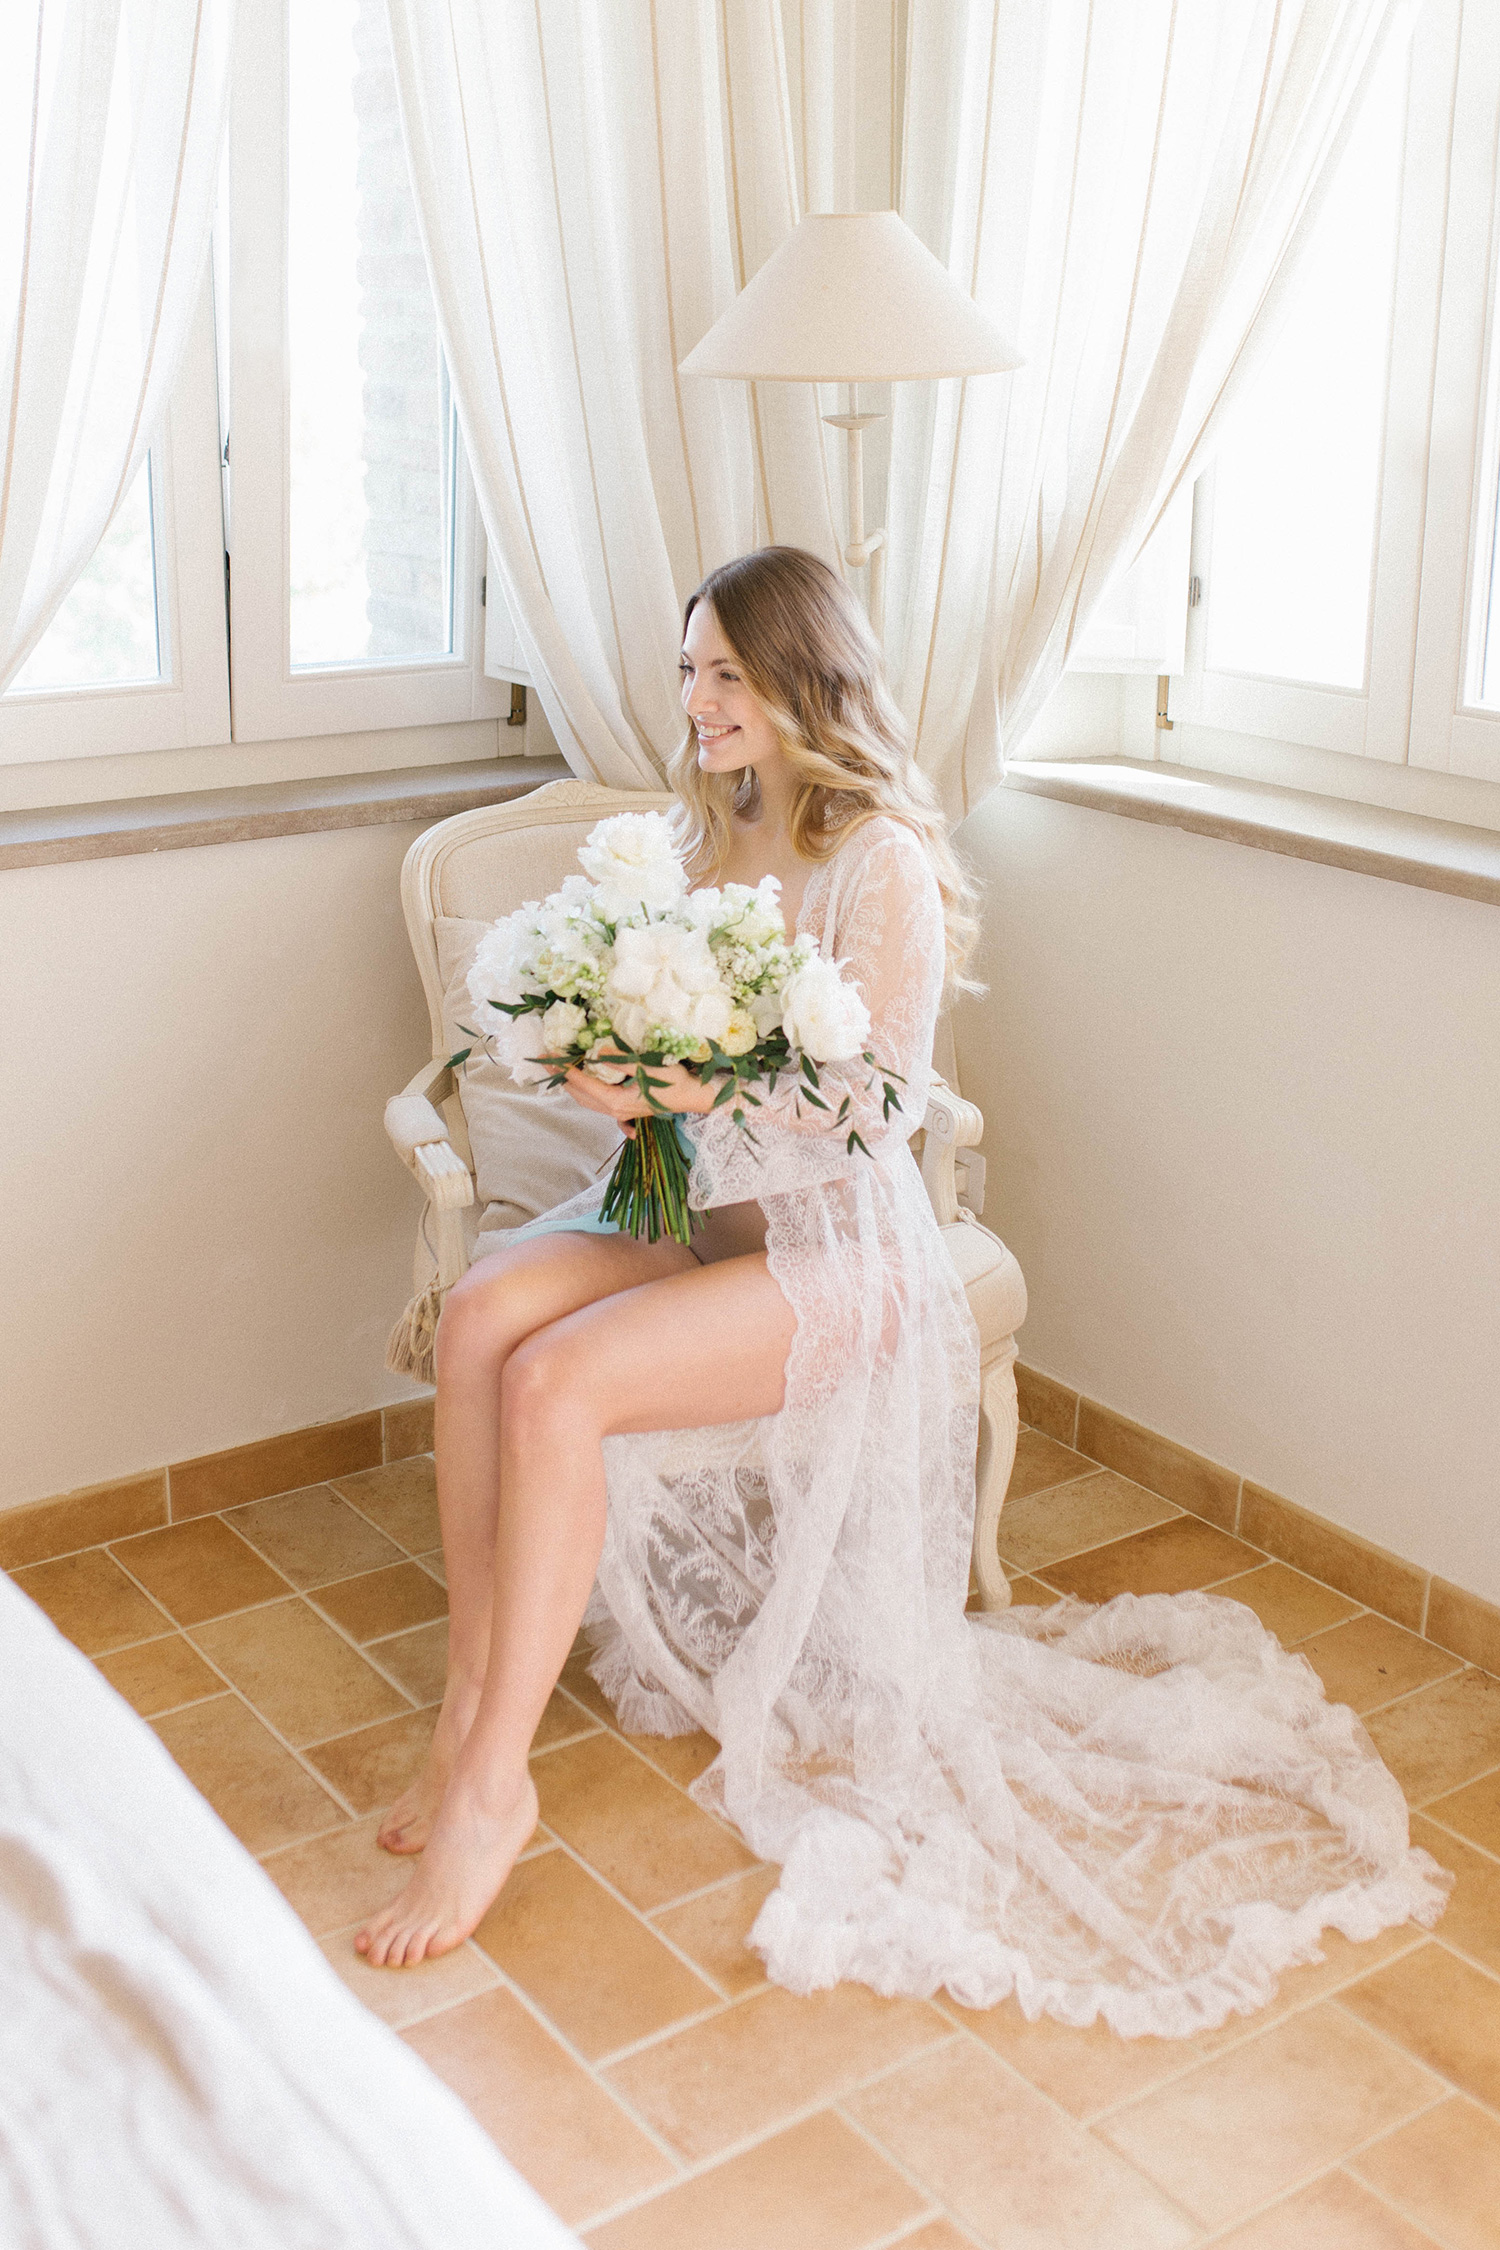 Wedding photography in Italy | Irene Fucci